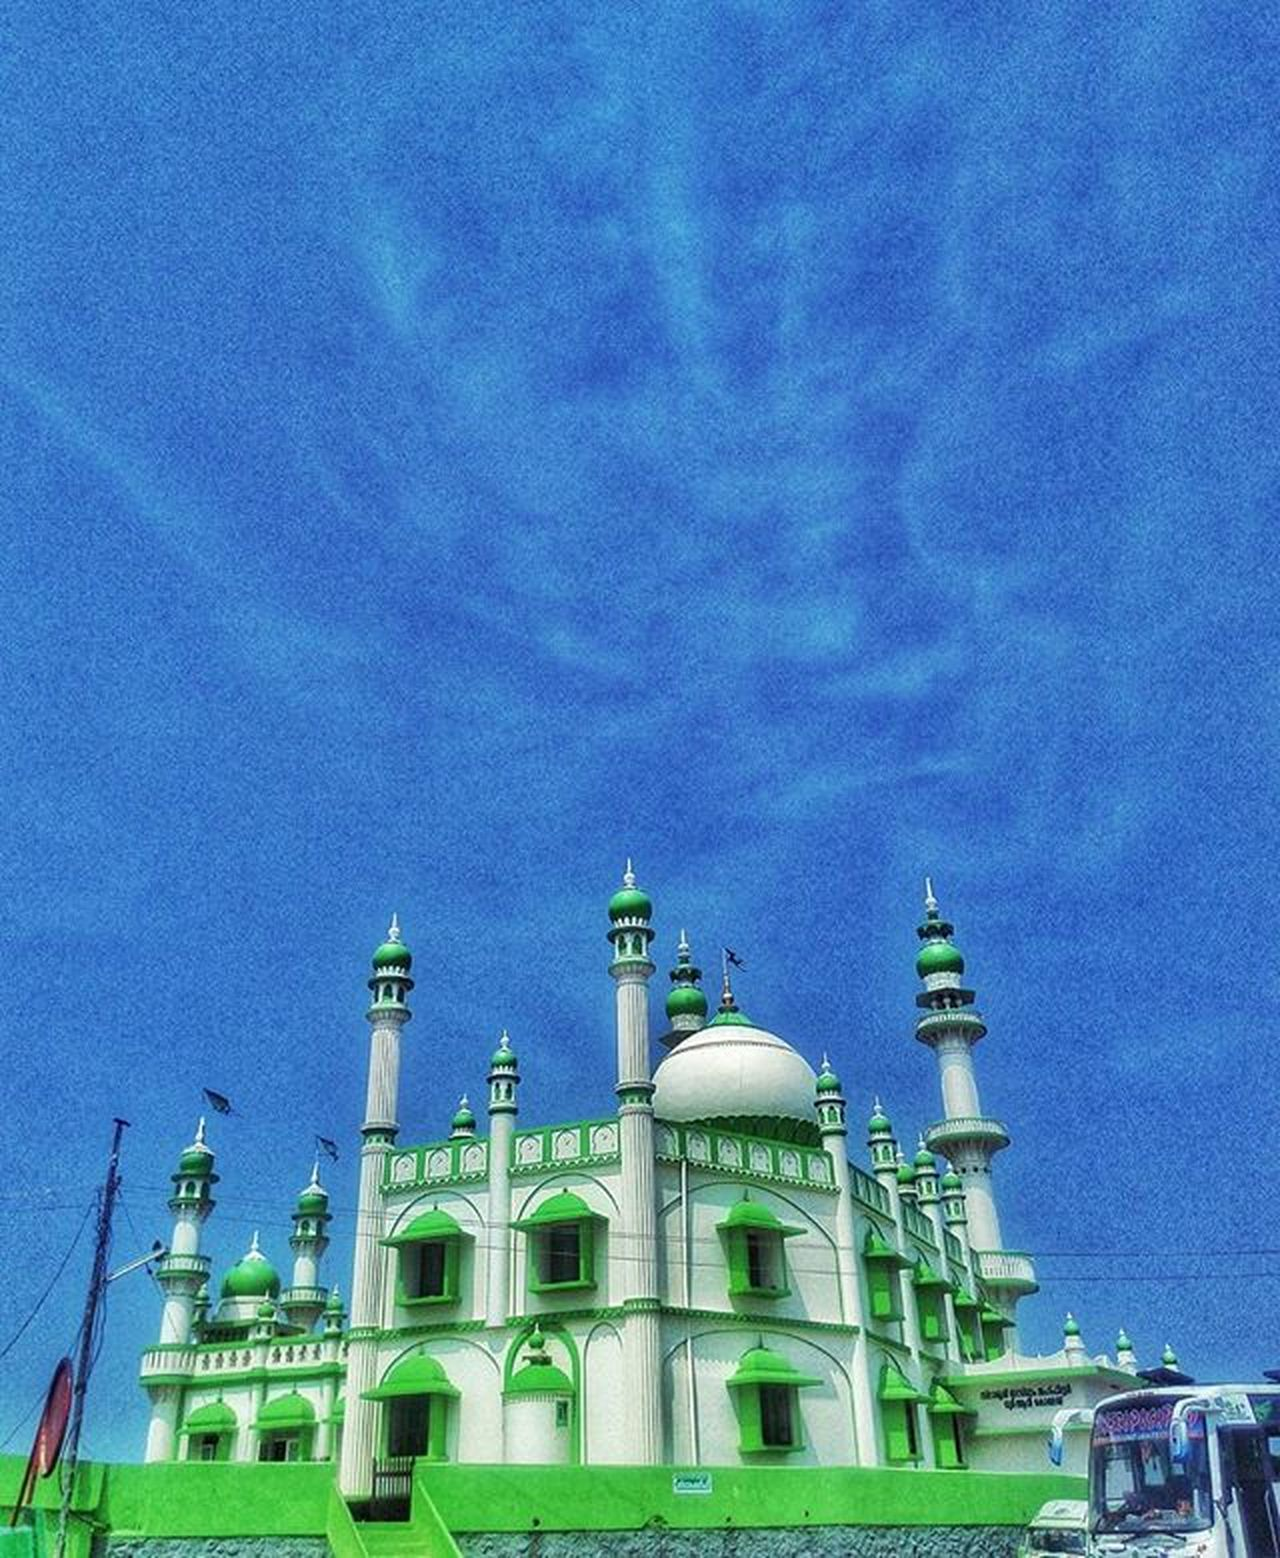 Mosque ☀ . Islam Muslim Mosque Church God Blessing Showered Prayer Happy Love Trivandrm Thiruvananthapuram Vizhinjam Trip VSCO Vscocam Vscogood Instagram Instafollow Indian Kerala Instamood Instagood Instanight